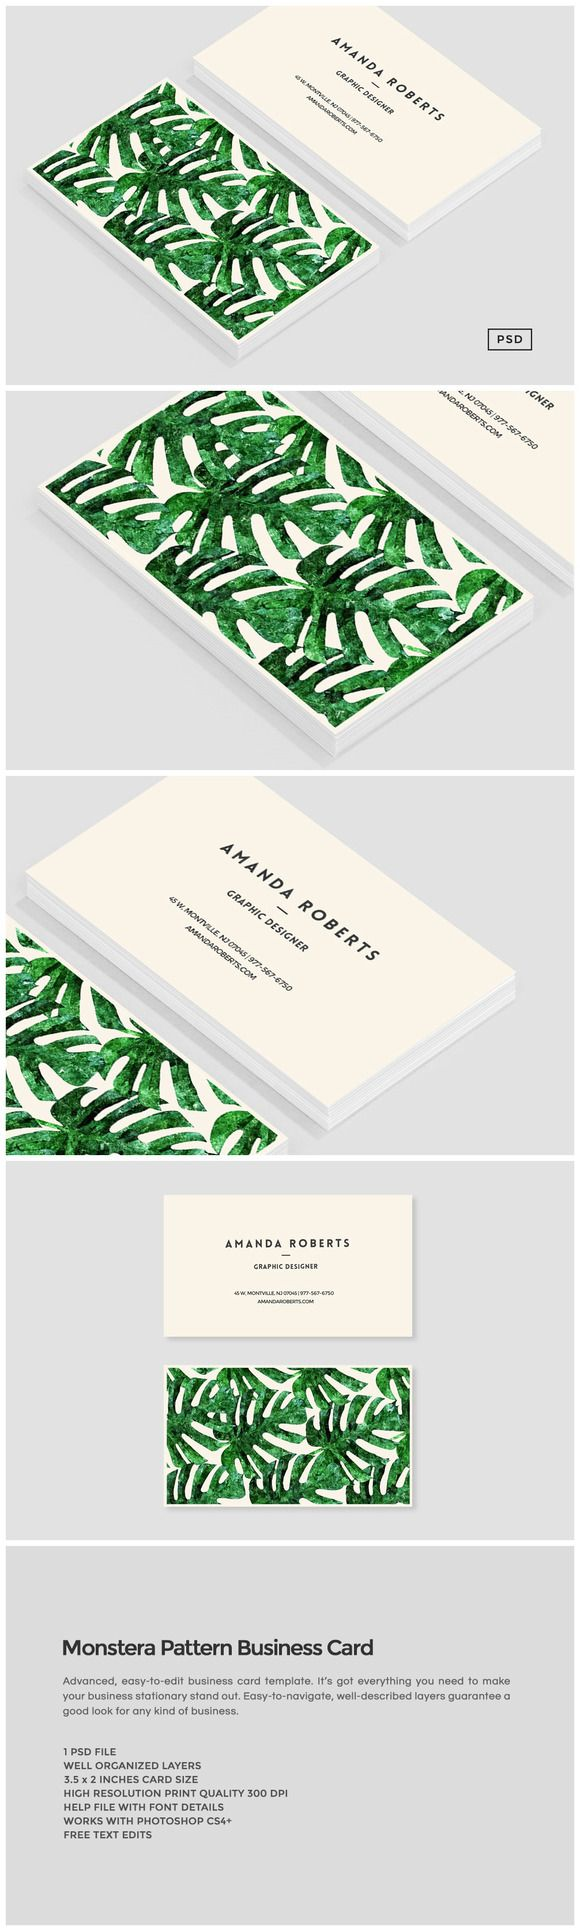 Monstera Pattern Business Card Introducing our latest Monstera Pattern business card template, perfect for use in your next project or for your own brand identity. All our logo desi... https://creativemarket.com/MeeraG/509777-Monstera-Pattern-Business-Card